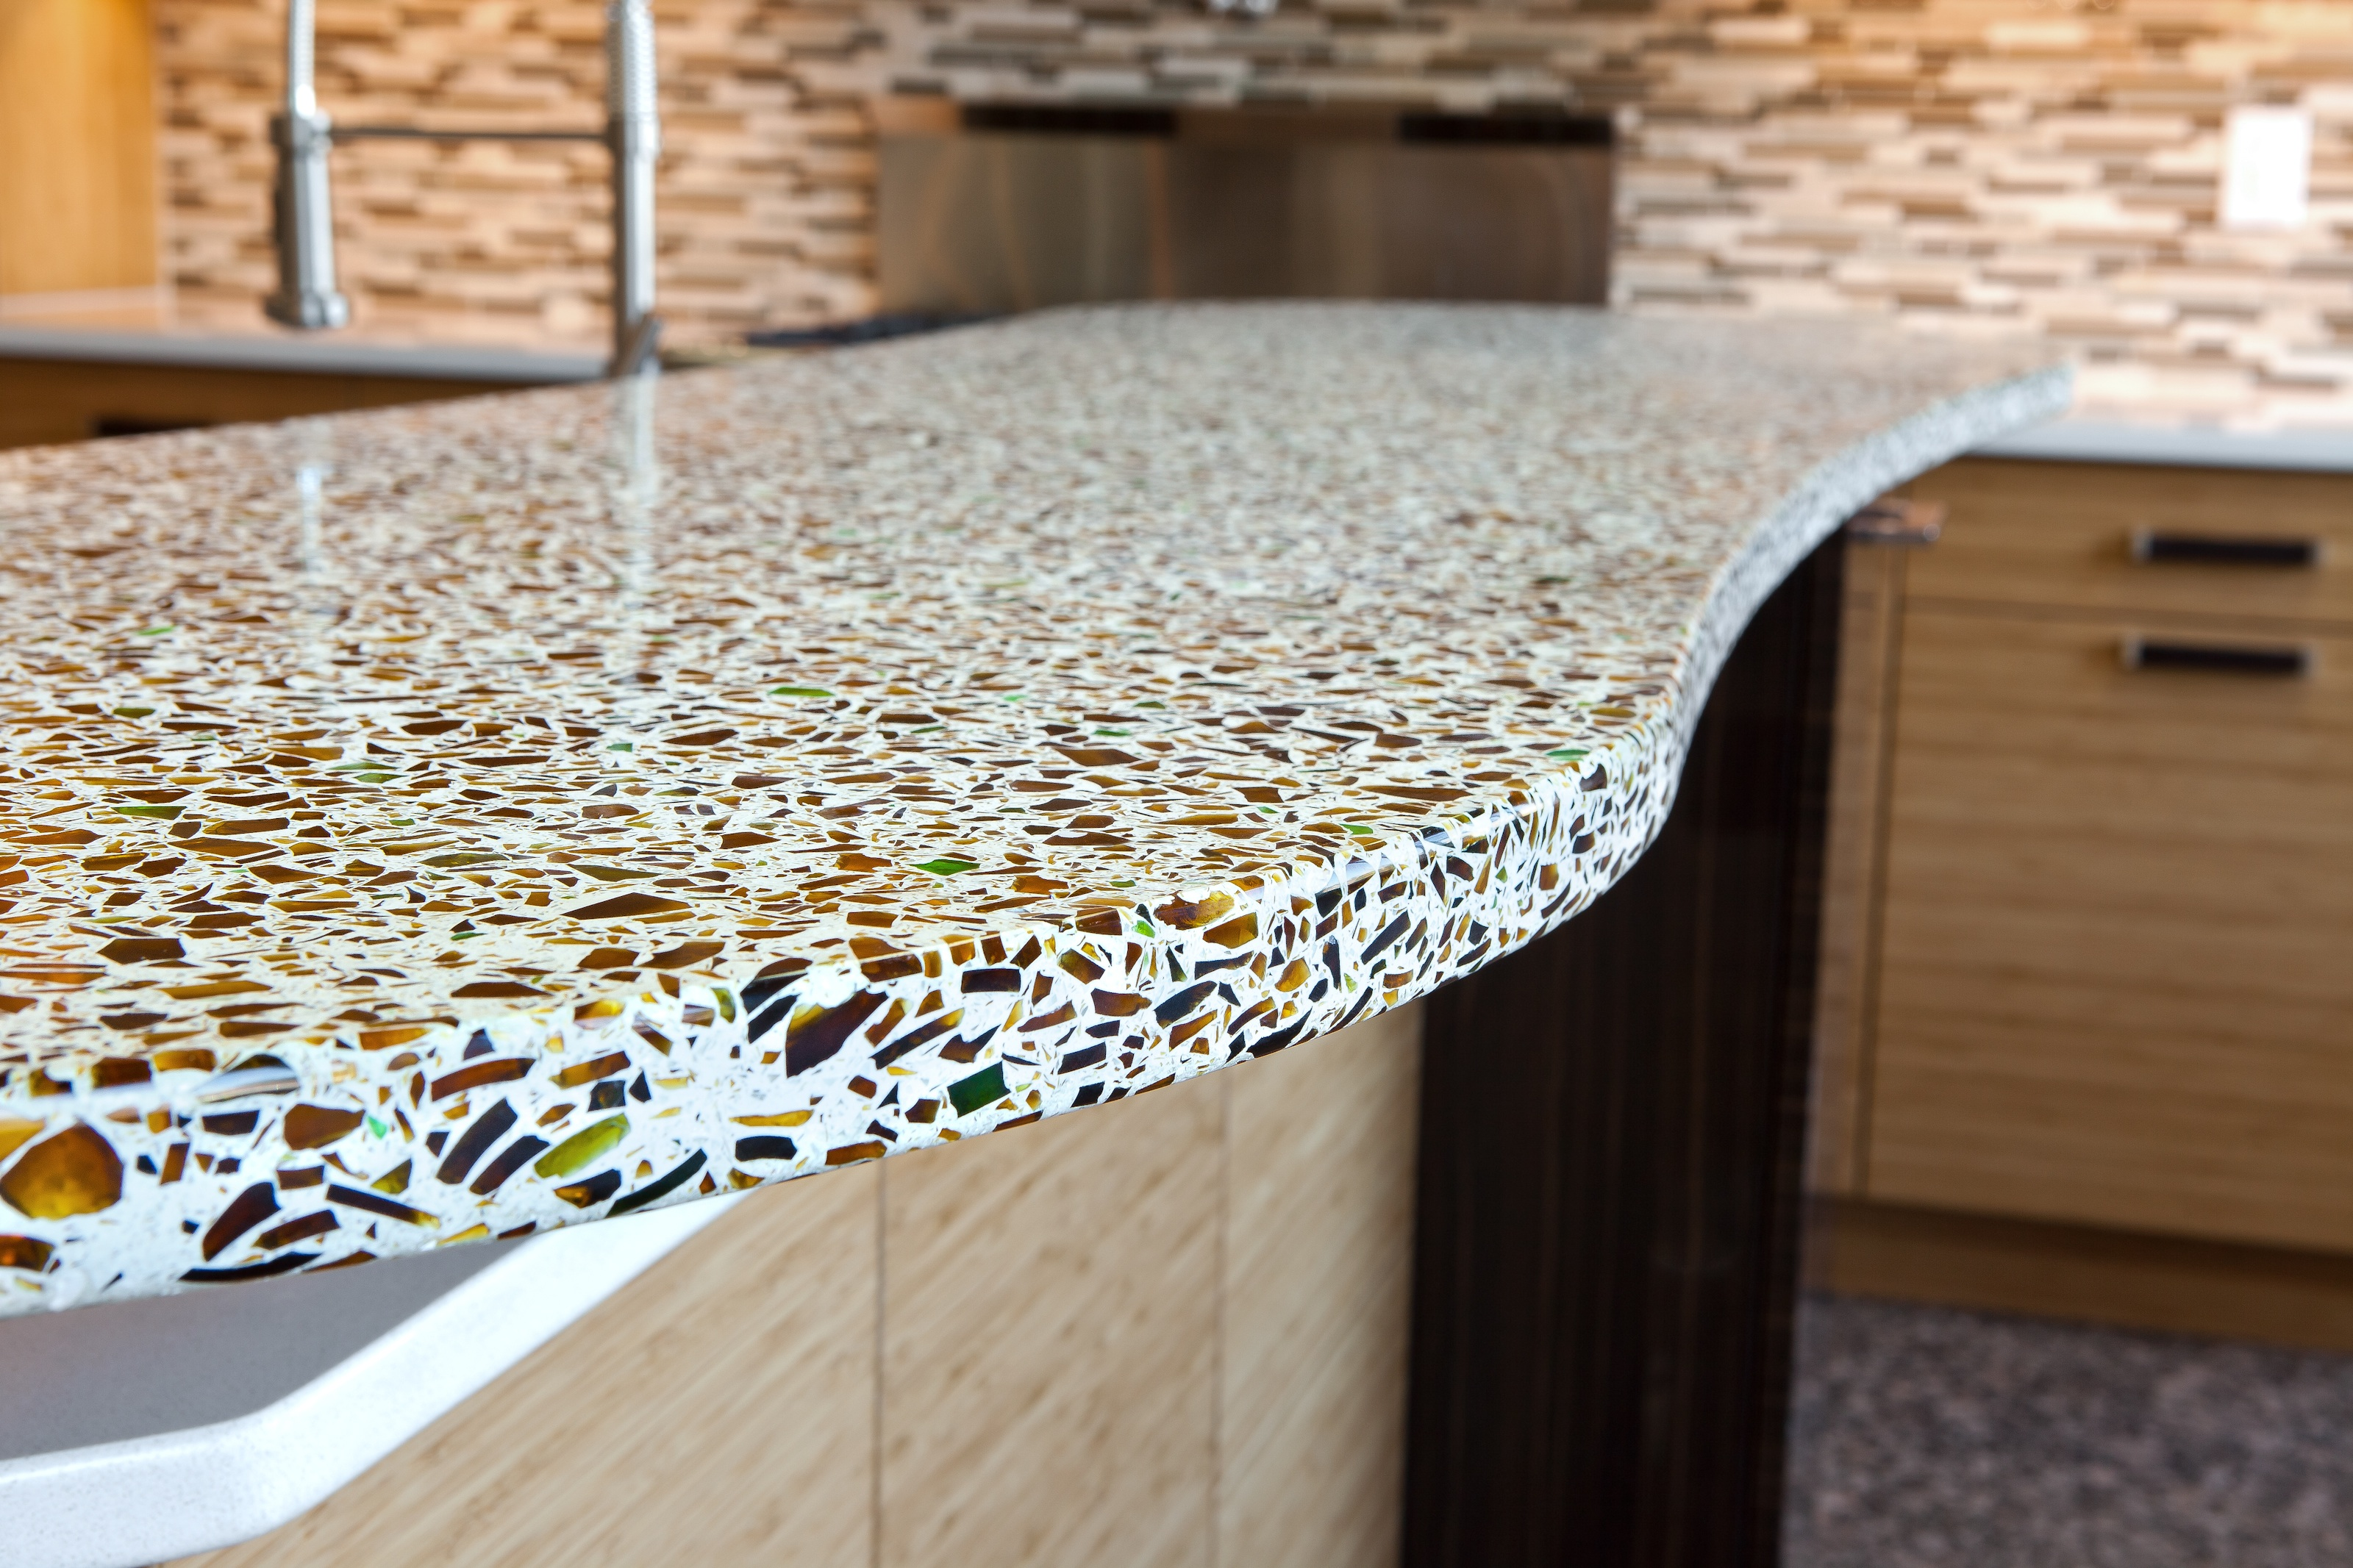 Countertop Materials Recycled : Ecofriendly Countertops for Sustainable Kitchen Design